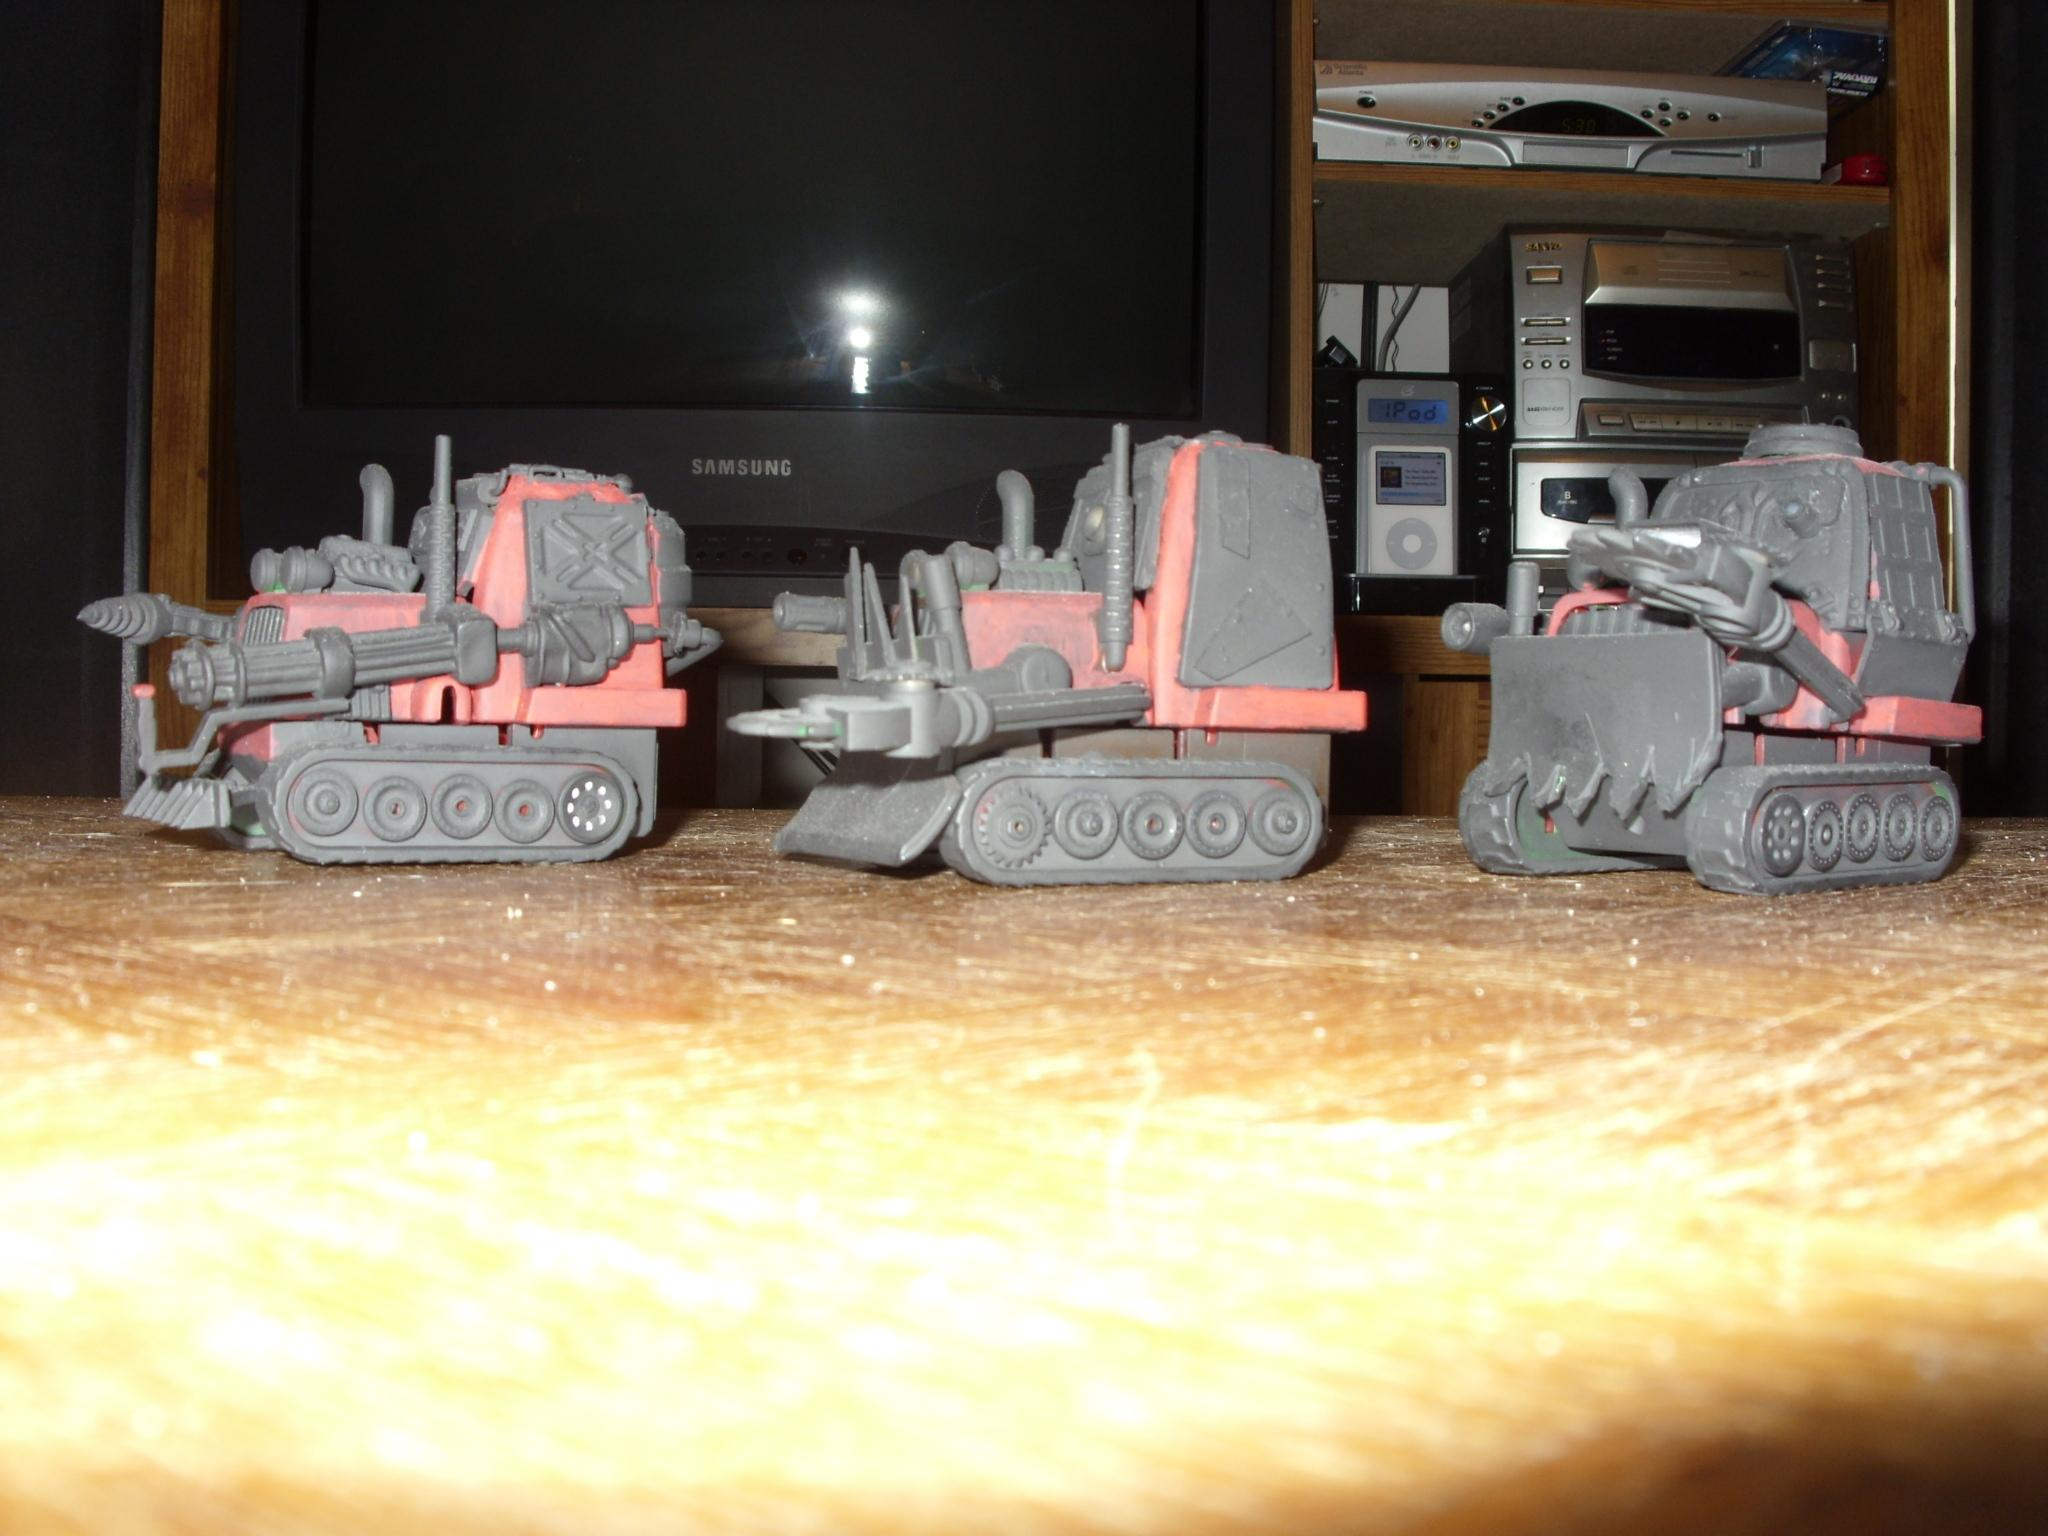 Stand in for Killa Kans